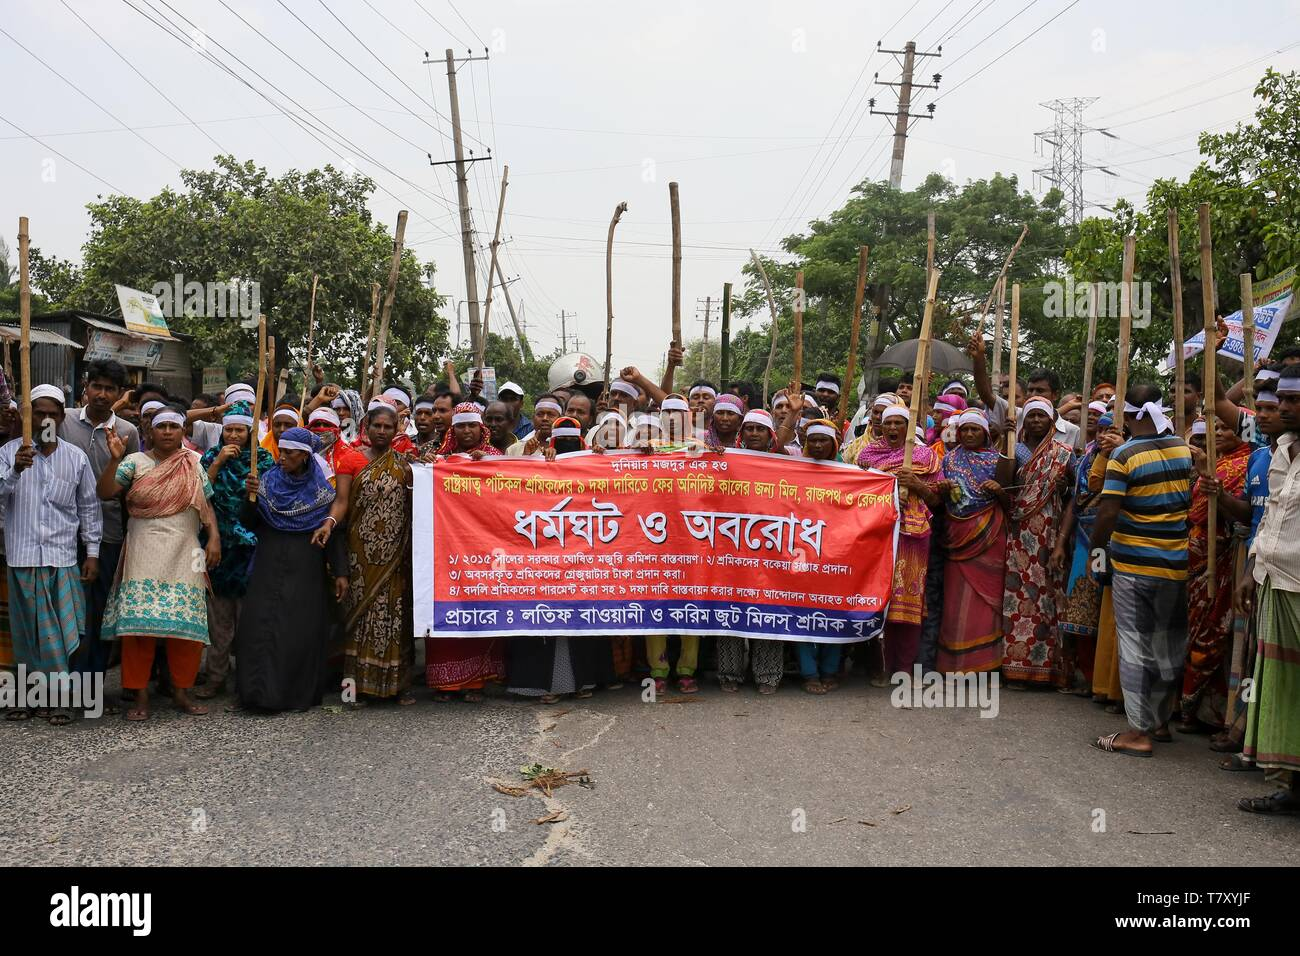 Dhaka, Bangladesh. 09th May, 2019. In Demra, workers blocked the Staff Quarter intersection, Demra-Rampura road and Demra-Narayanganj road, creating tailbacks. Hundreds of workers of Latif Bawany Jute Mills and Karim Jute Mills took position on the streets at 6:00am and their protest continued till 5:00pm. Some workers also set fire to tree logs and bamboo sticks on the road, witnesses said. Vehicles were seen taking alternative routes to avoid congestion. Credit: Md. Rakibul Hasan/Pacific Press/Alamy Live News - Stock Image